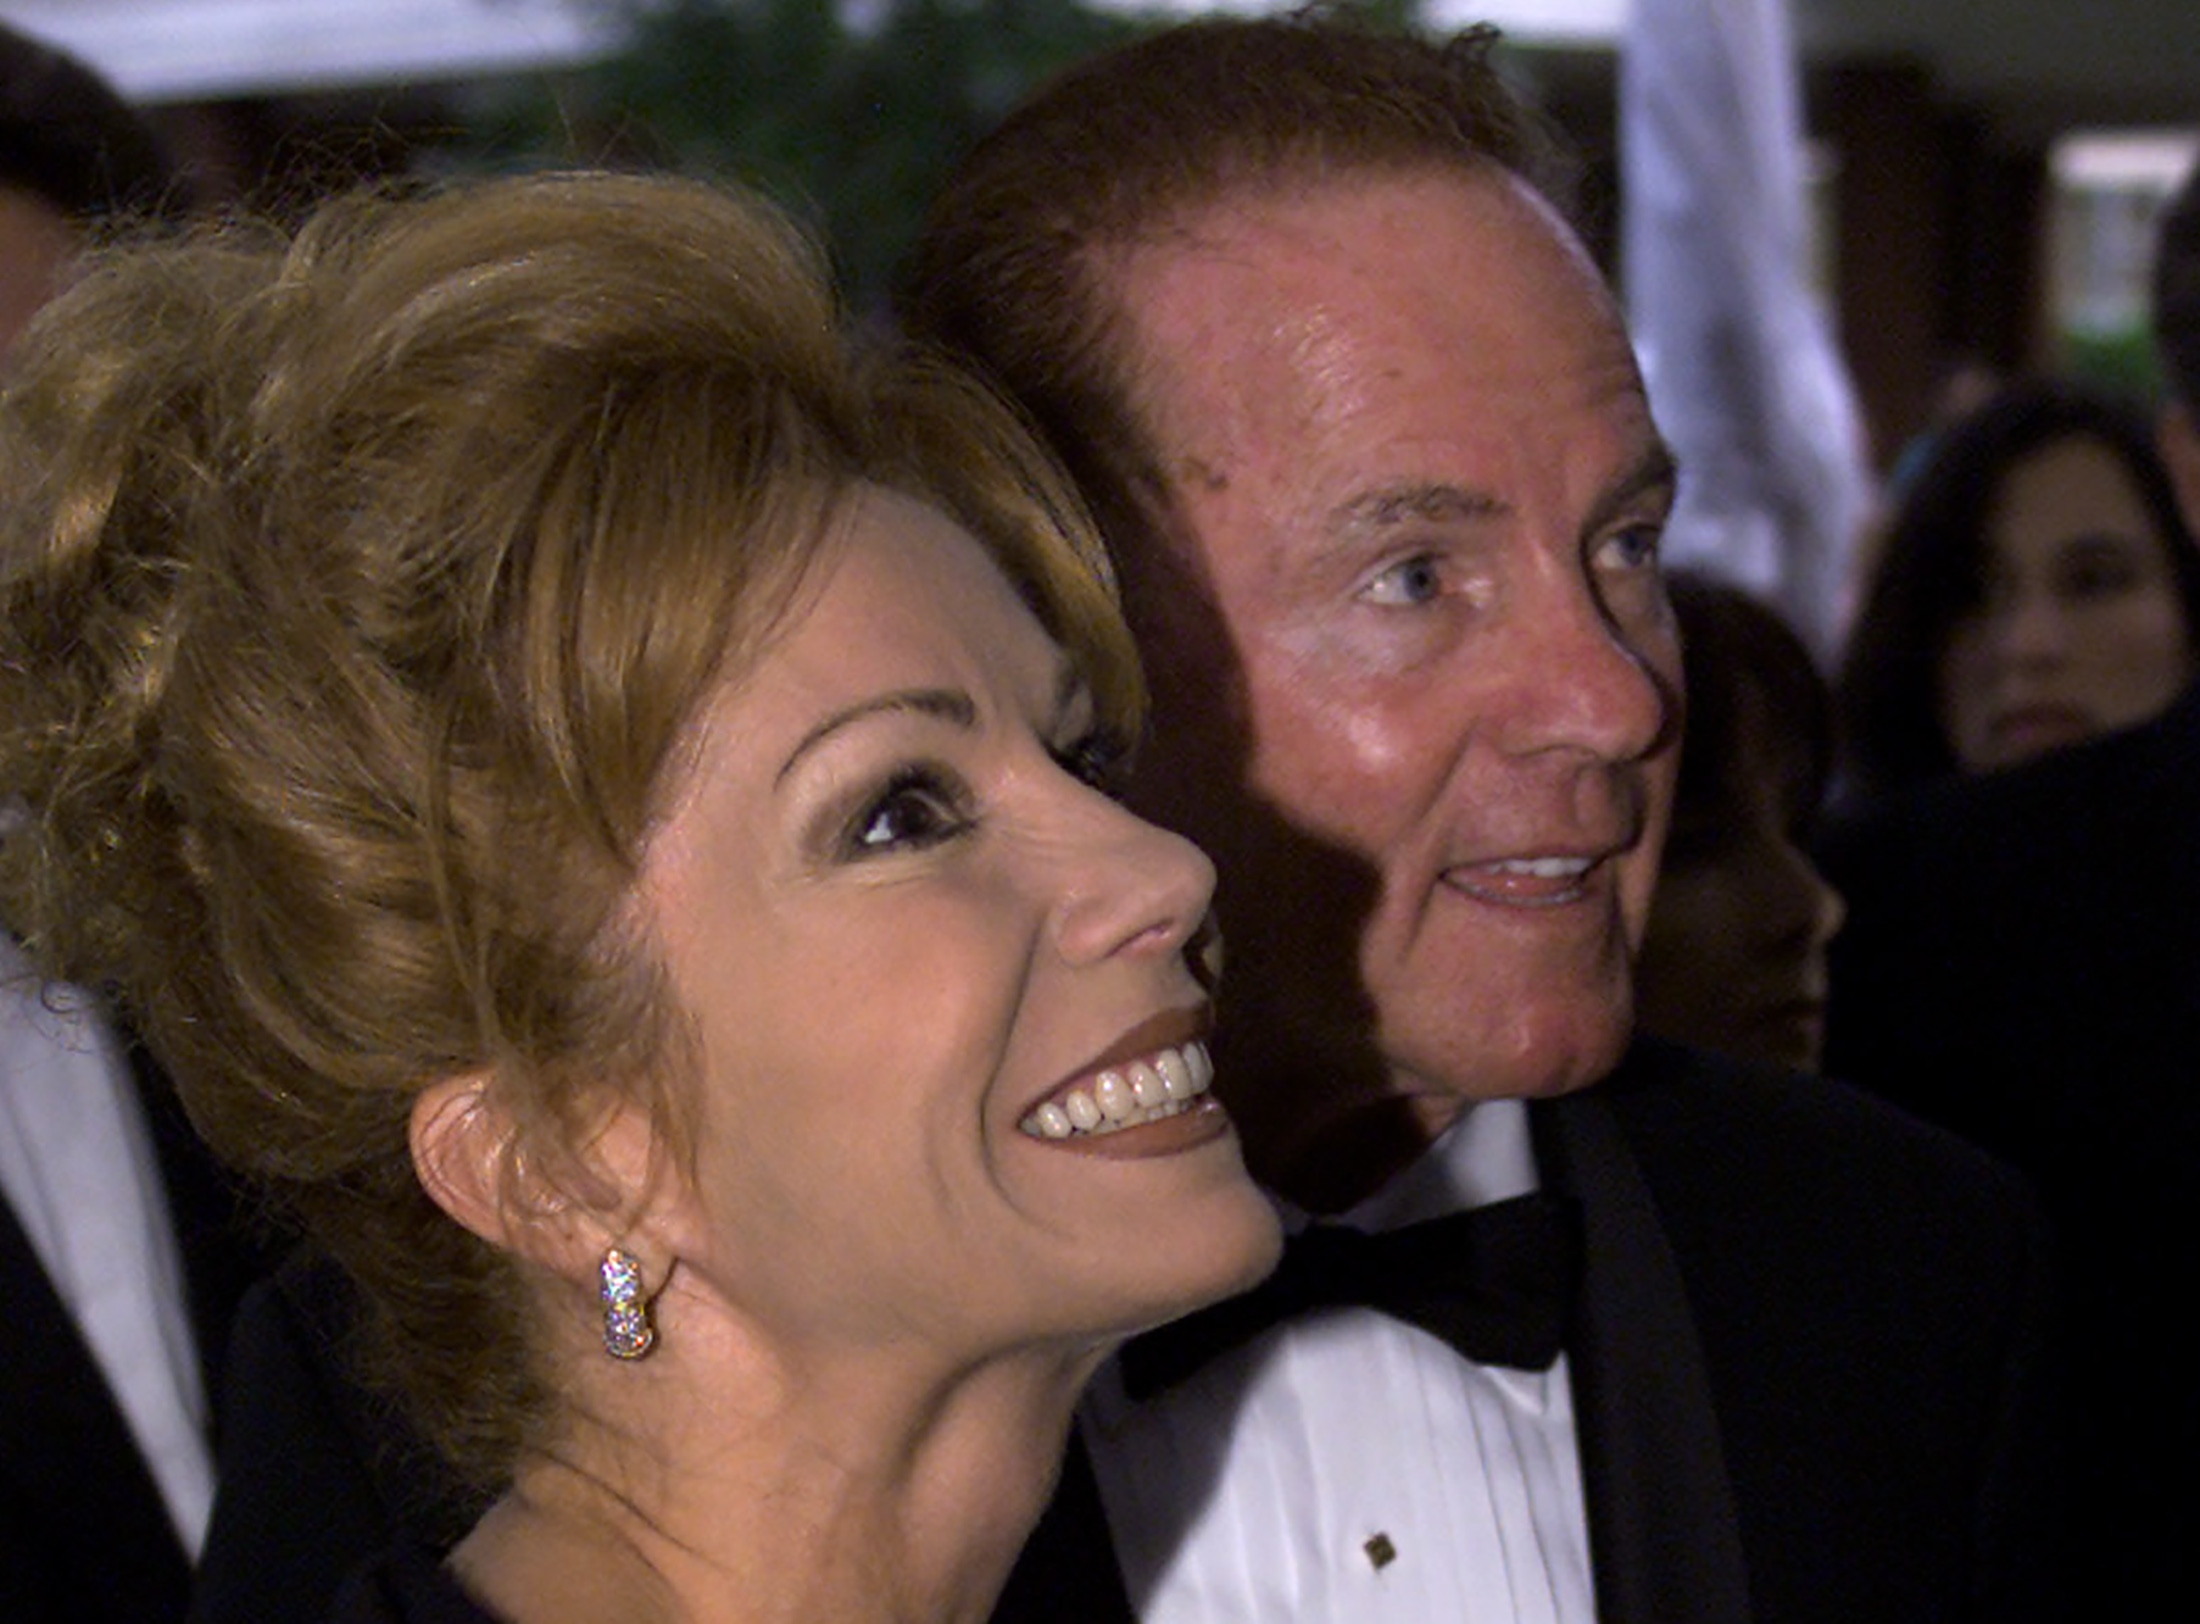 Famed Nfl Star Monday Night Football Pioneer Frank Gifford Is Dead At 84 The Japan Times